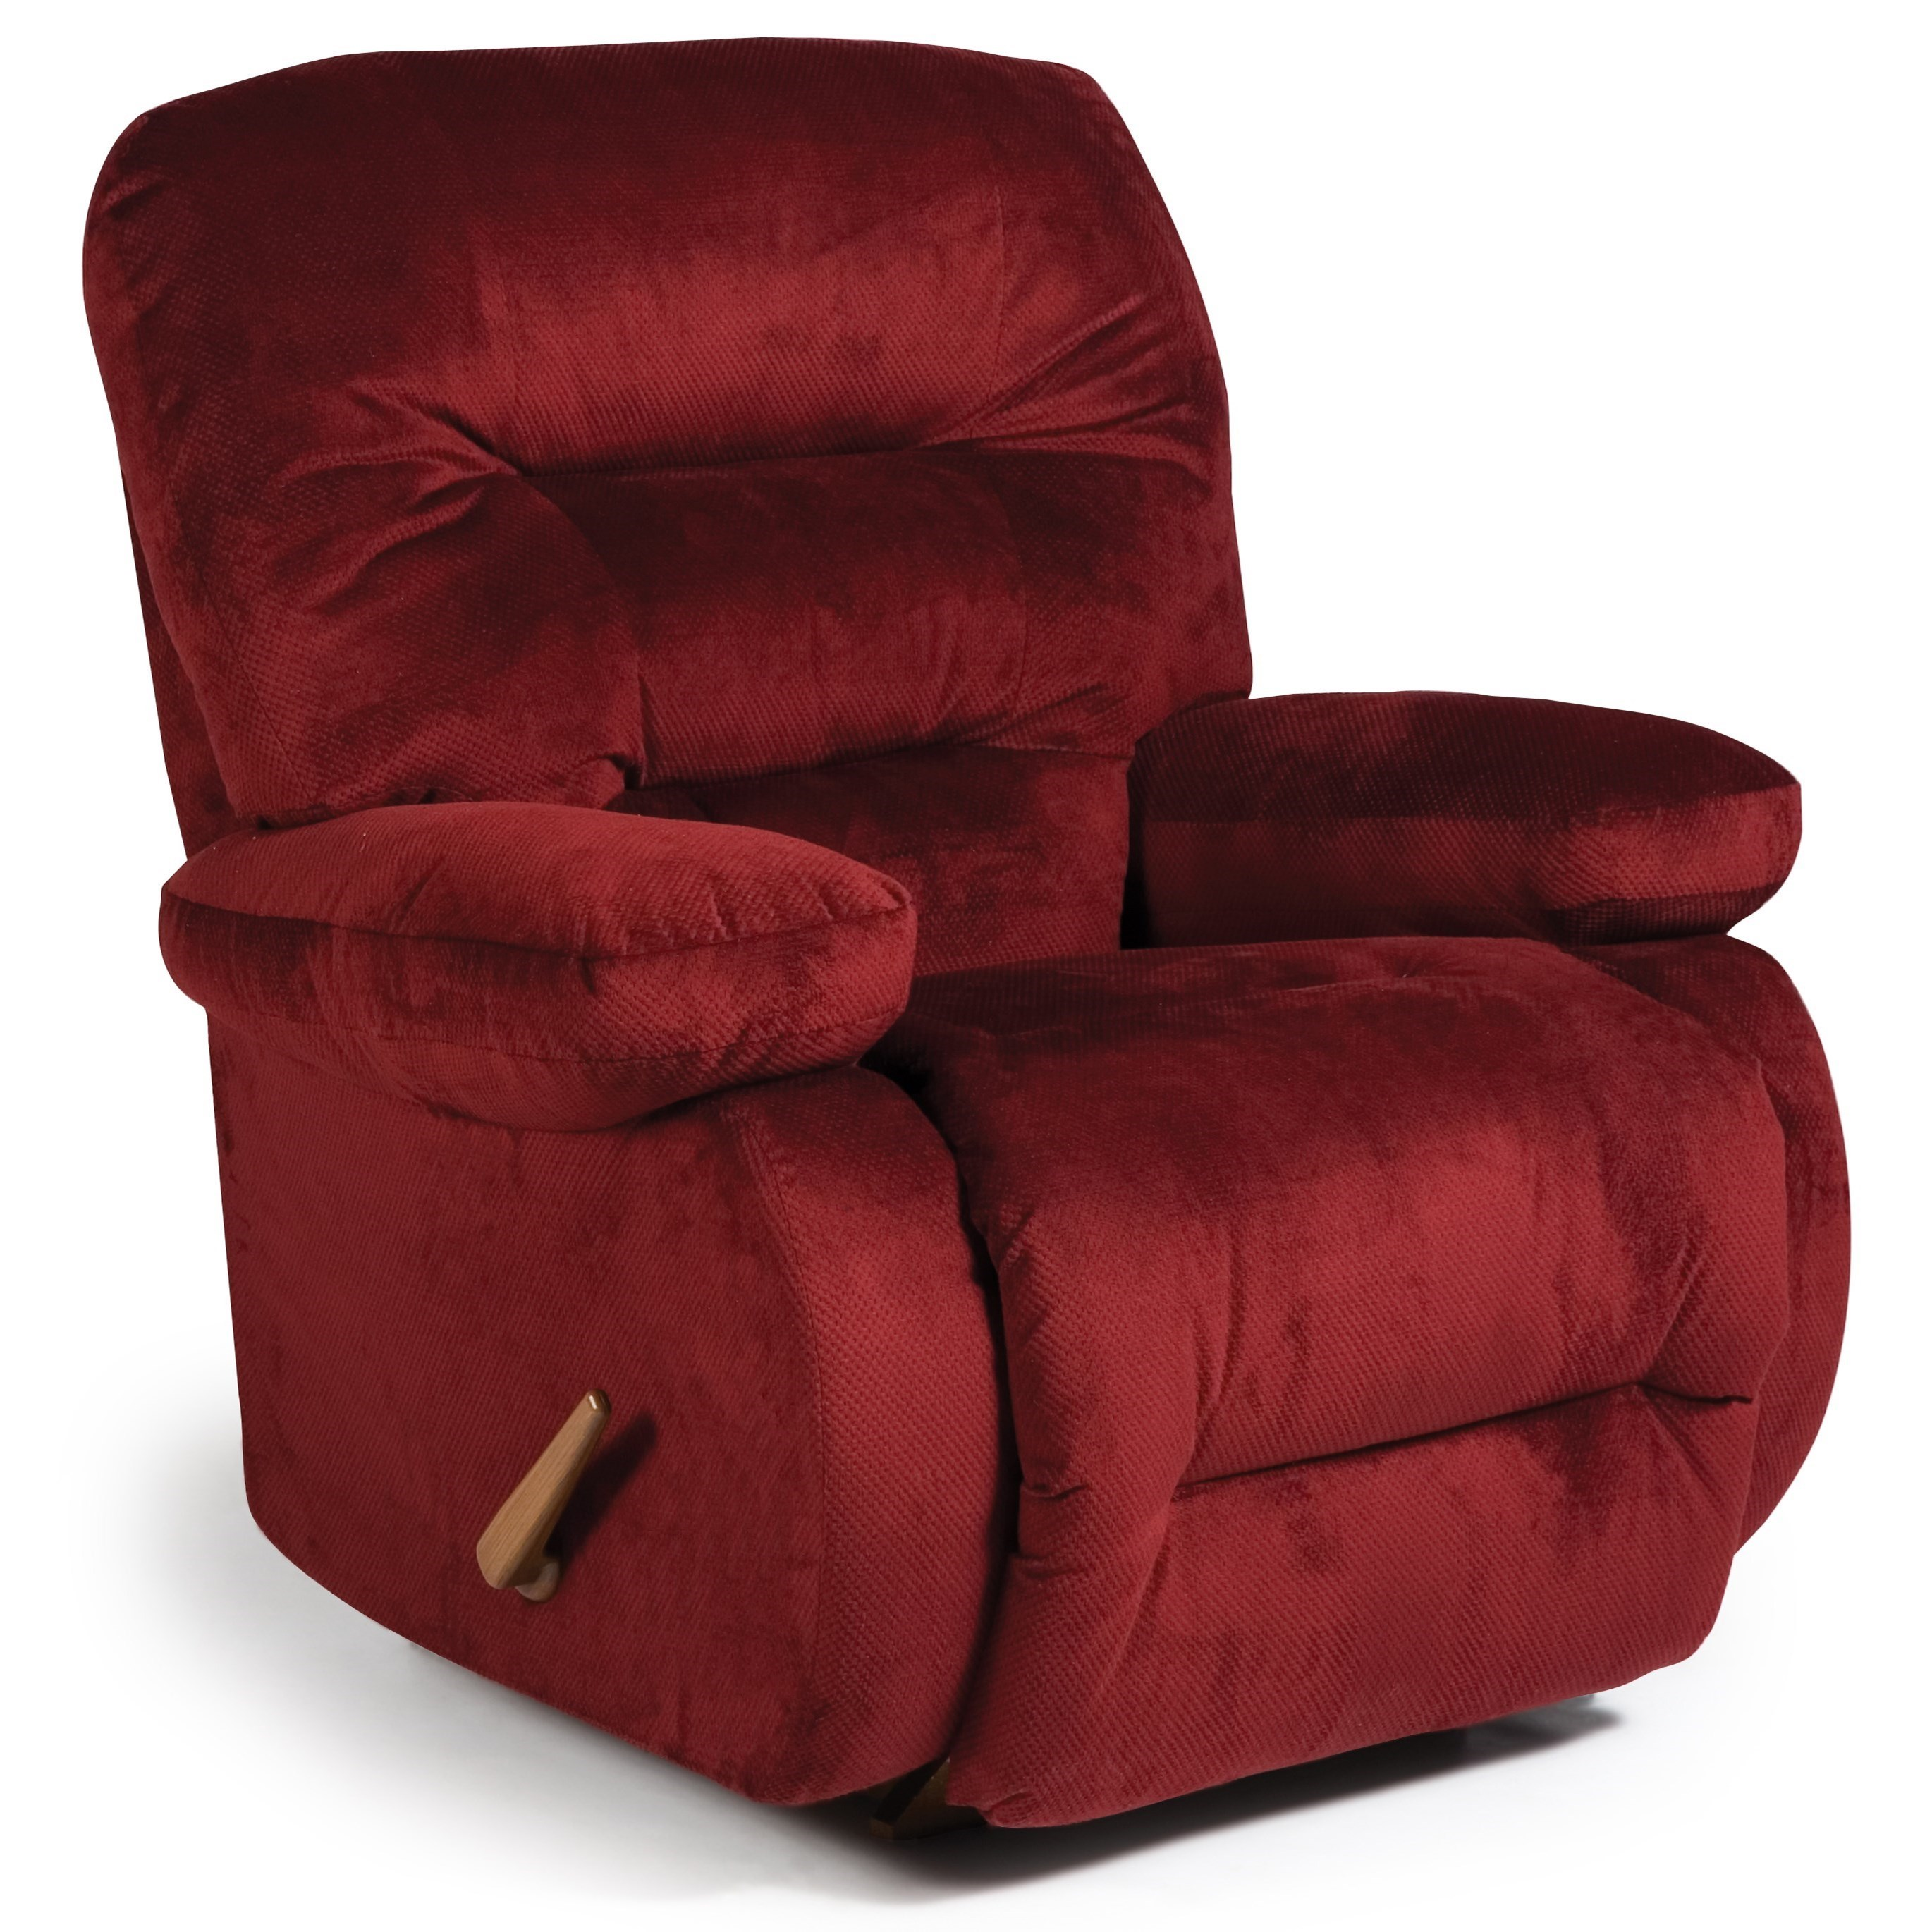 pop up recliner chairs dollar tree thanksgiving chair covers best home furnishings medium recliners maddox swivel glider reclinersmaddox